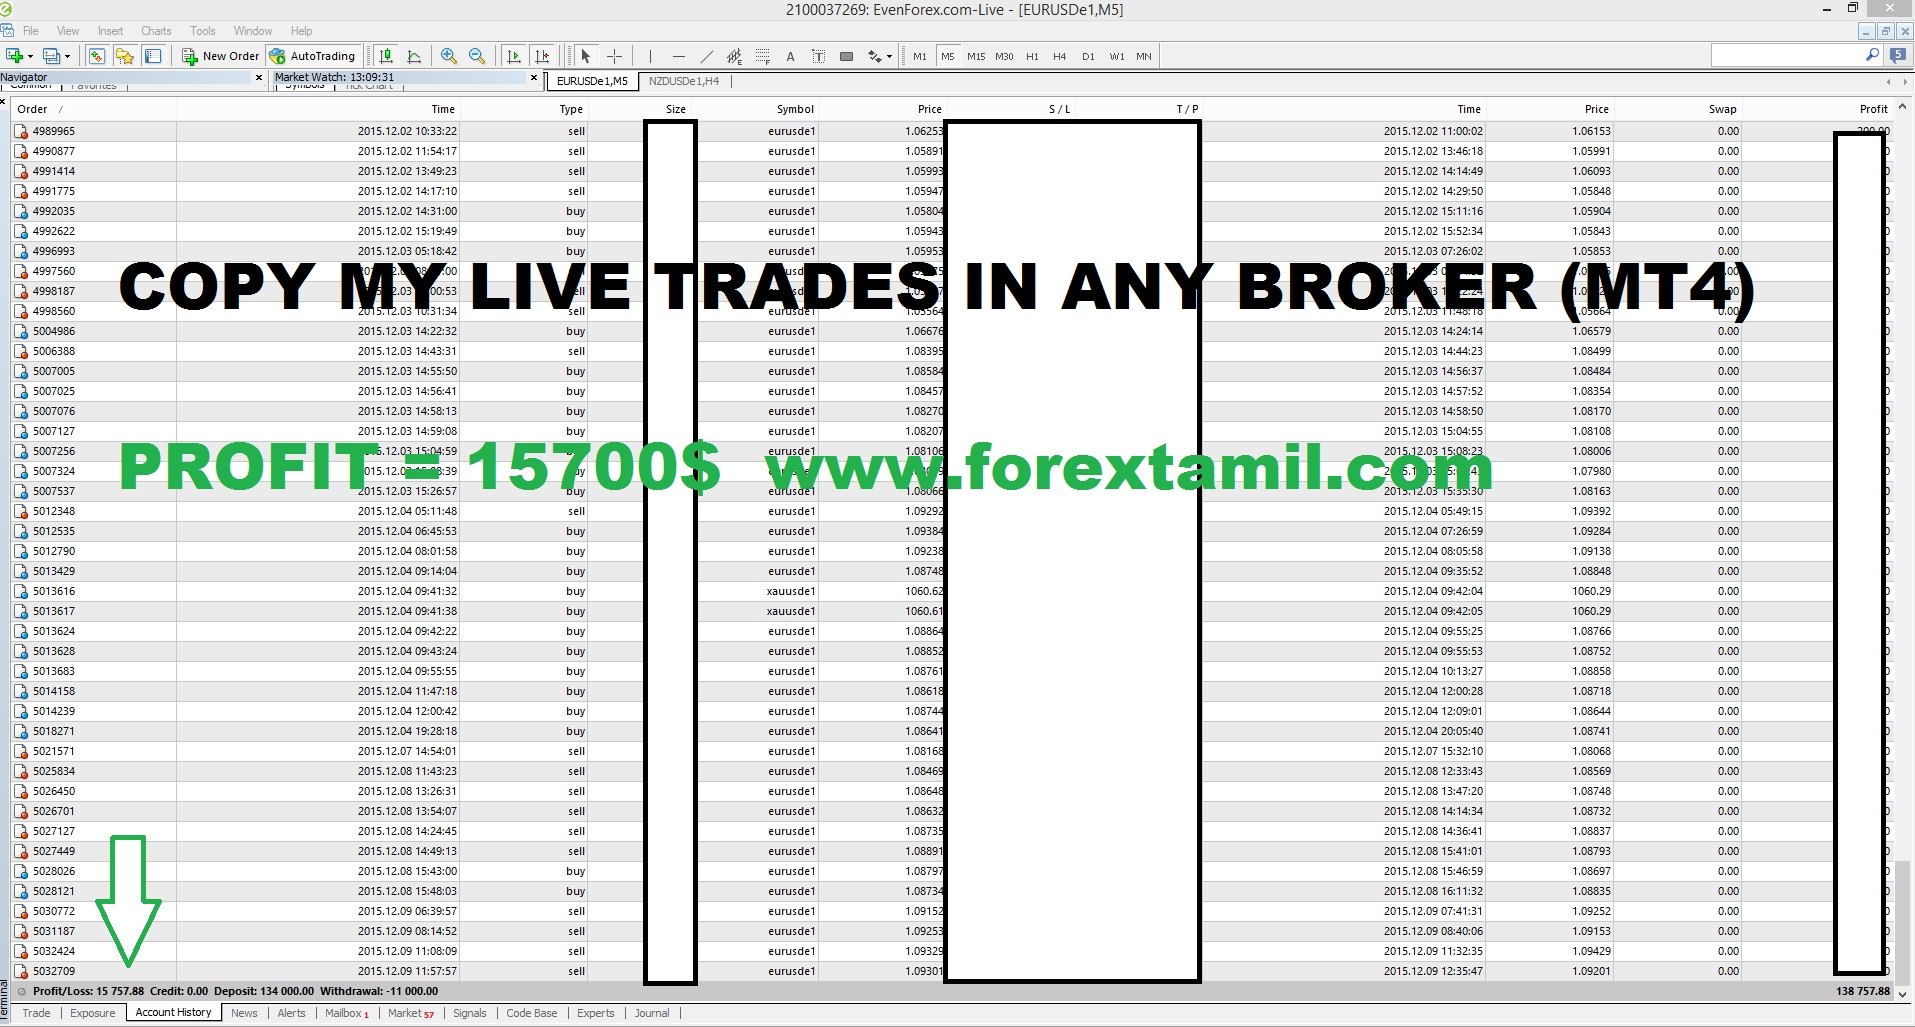 PROFIT :15700$ COPY TRADING IN ANY BROKER ALL OVER THE WORLD (MT4)